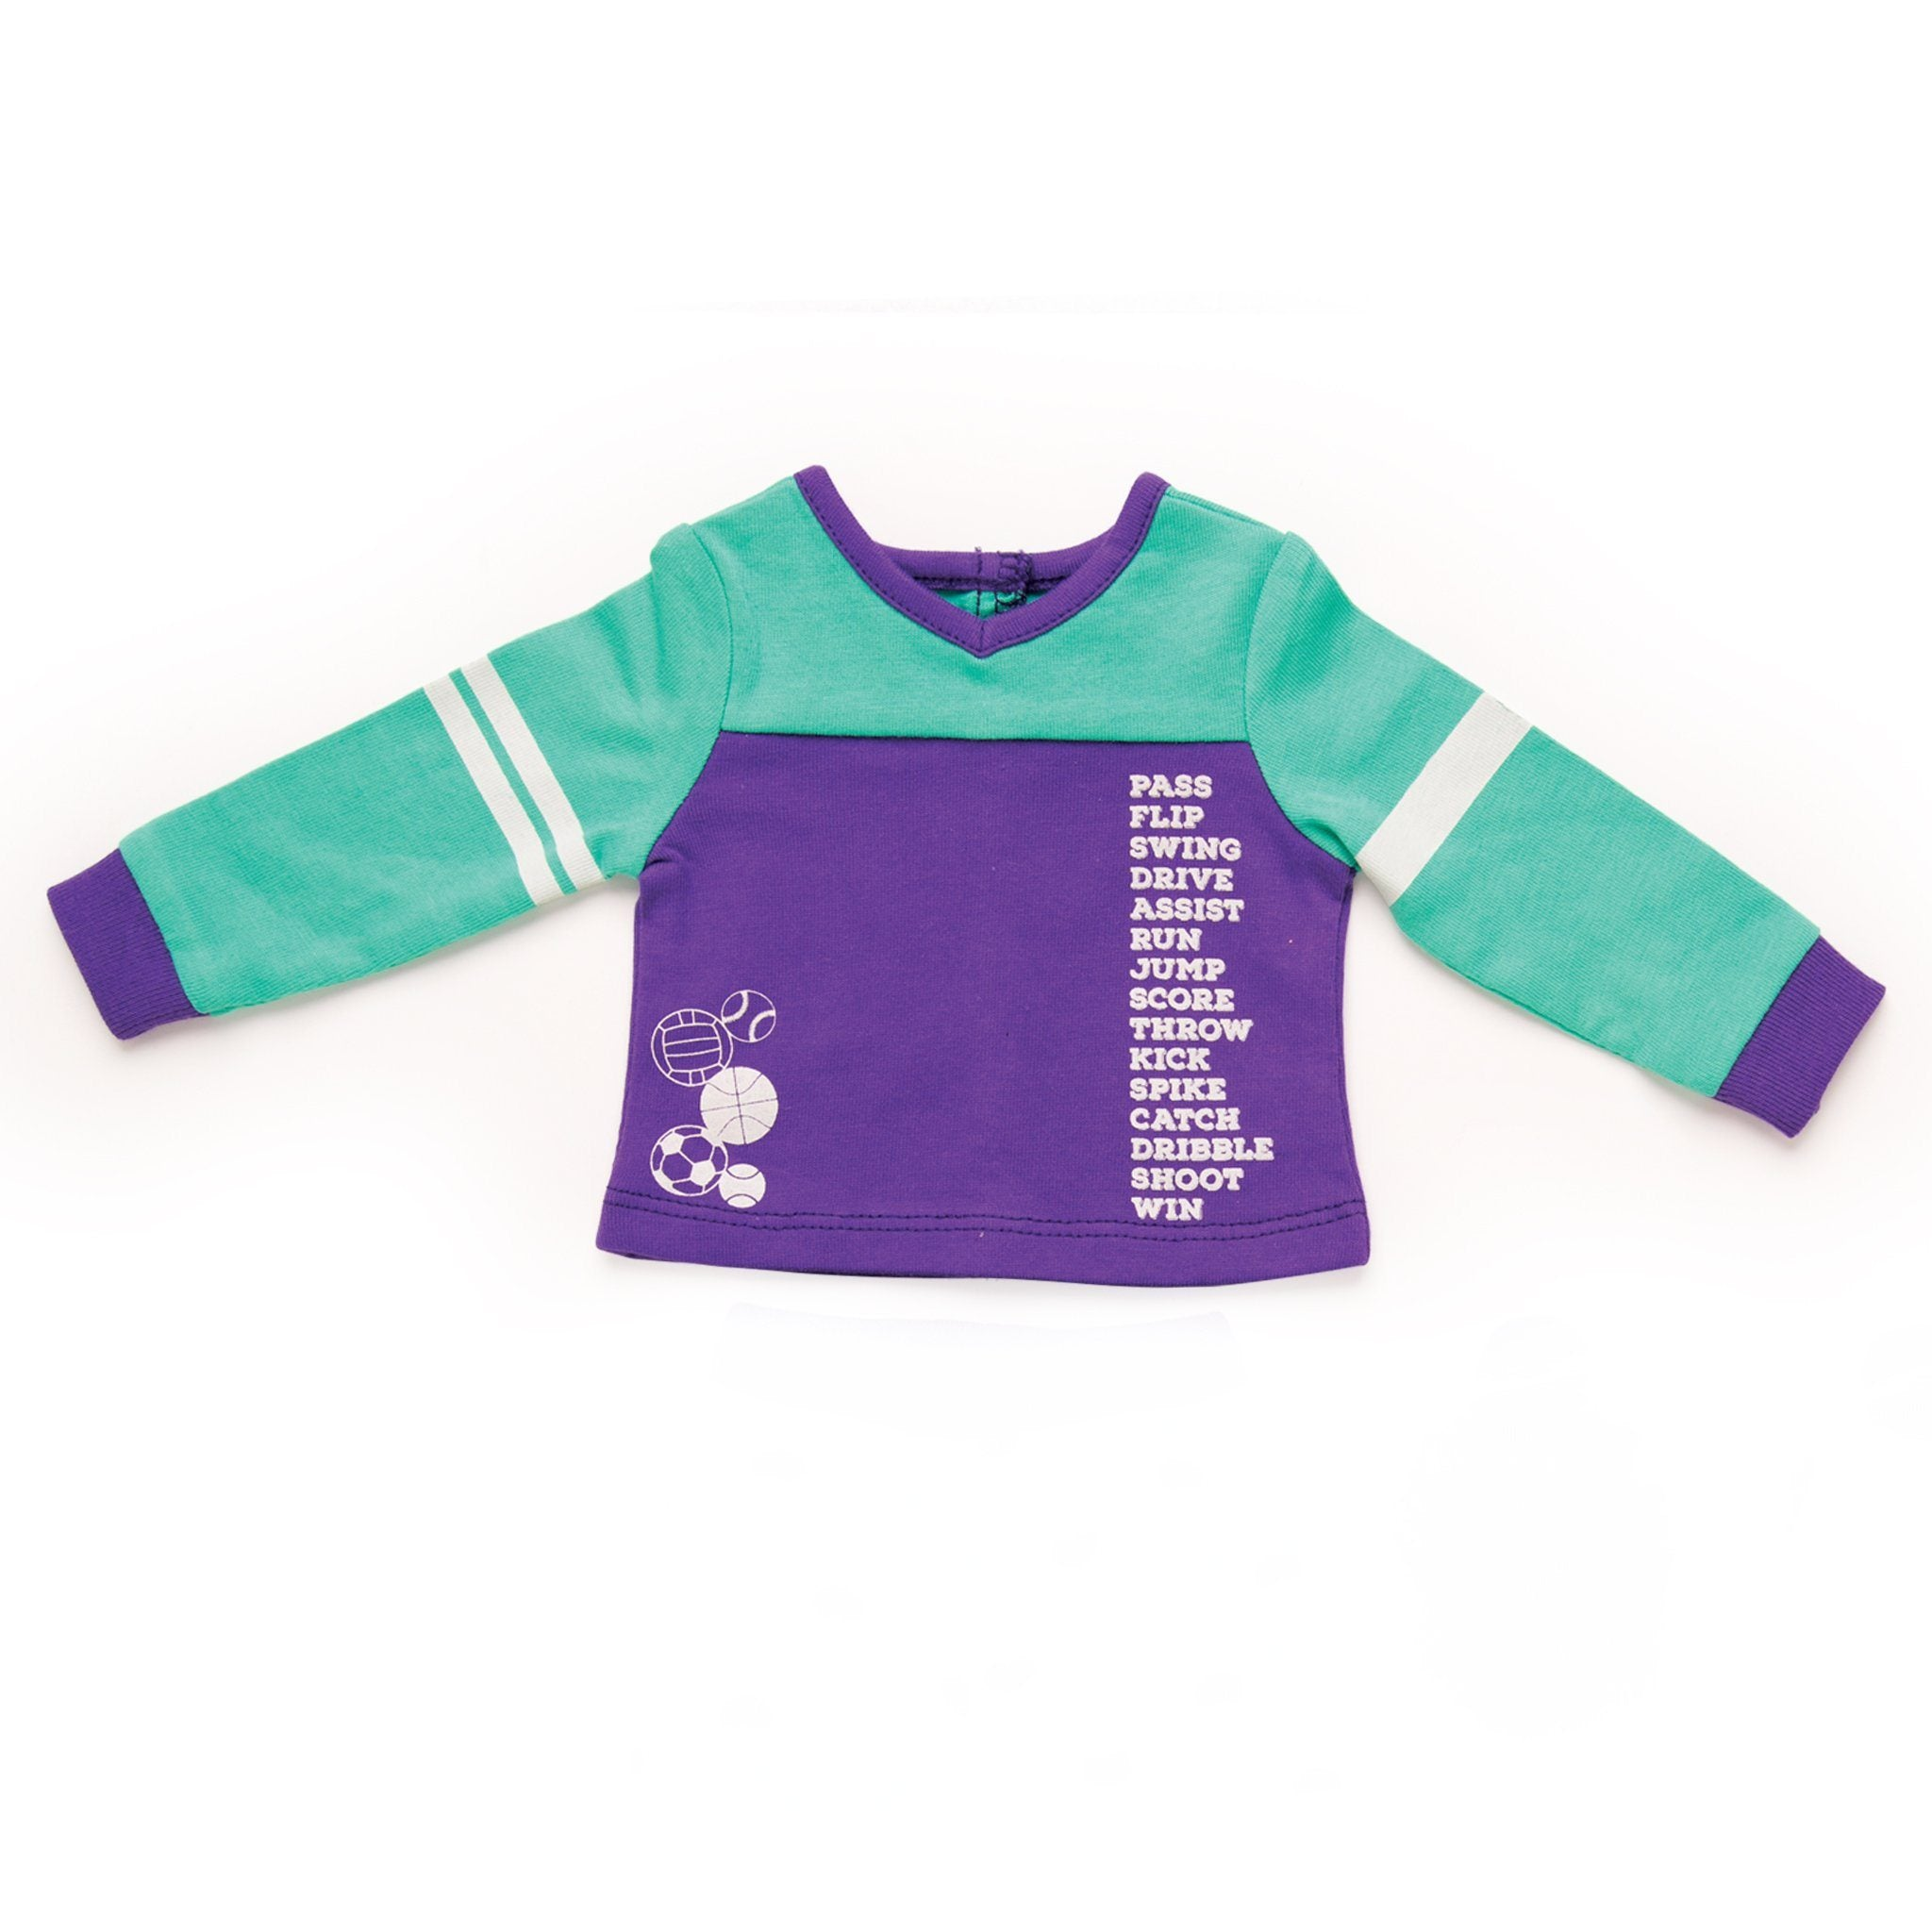 Dream Team sports-themed purple and teal PJ top with printed athletic words and sport-ball print. Fits all 18 inch dolls.